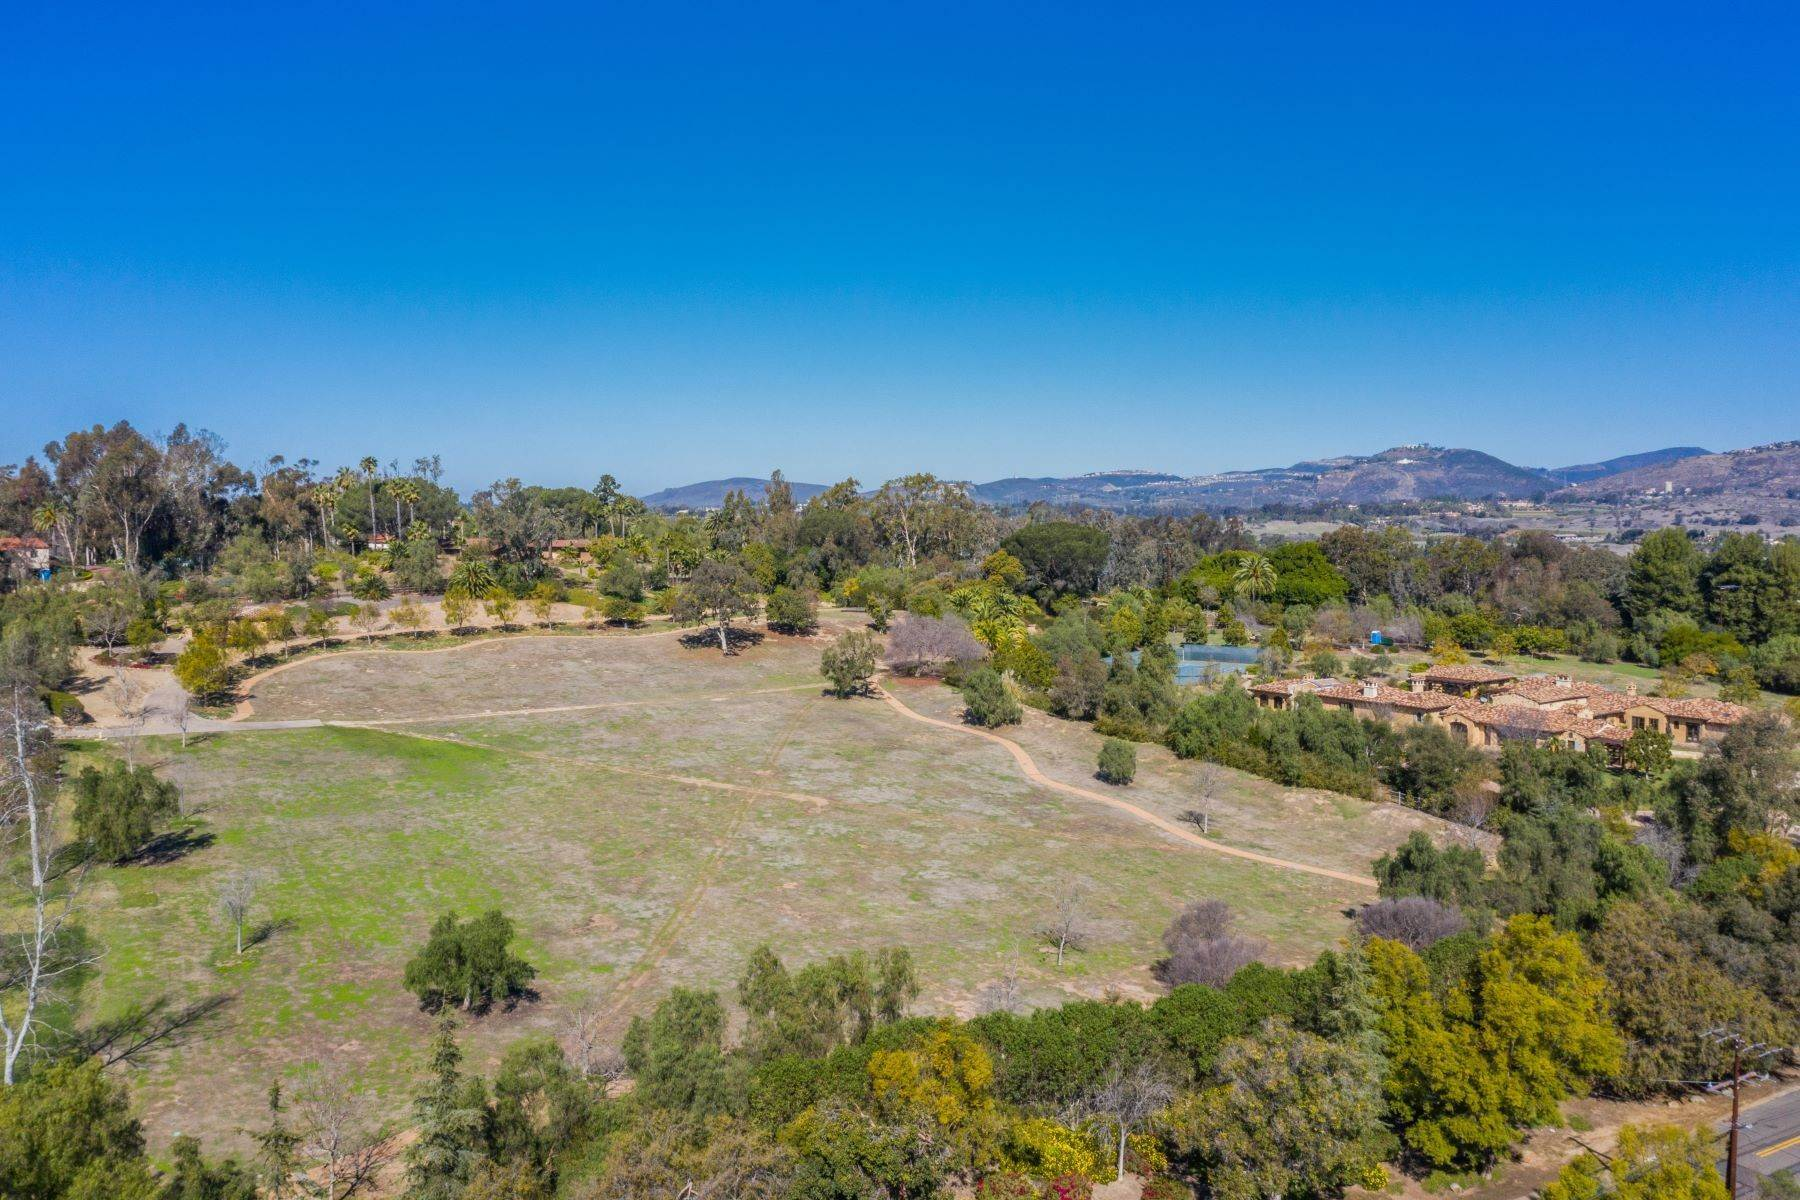 Land for Active at 17048 El Mirador, Rancho Santa Fe, CA 92067 17048 El Mirador Rancho Santa Fe, California 92067 United States